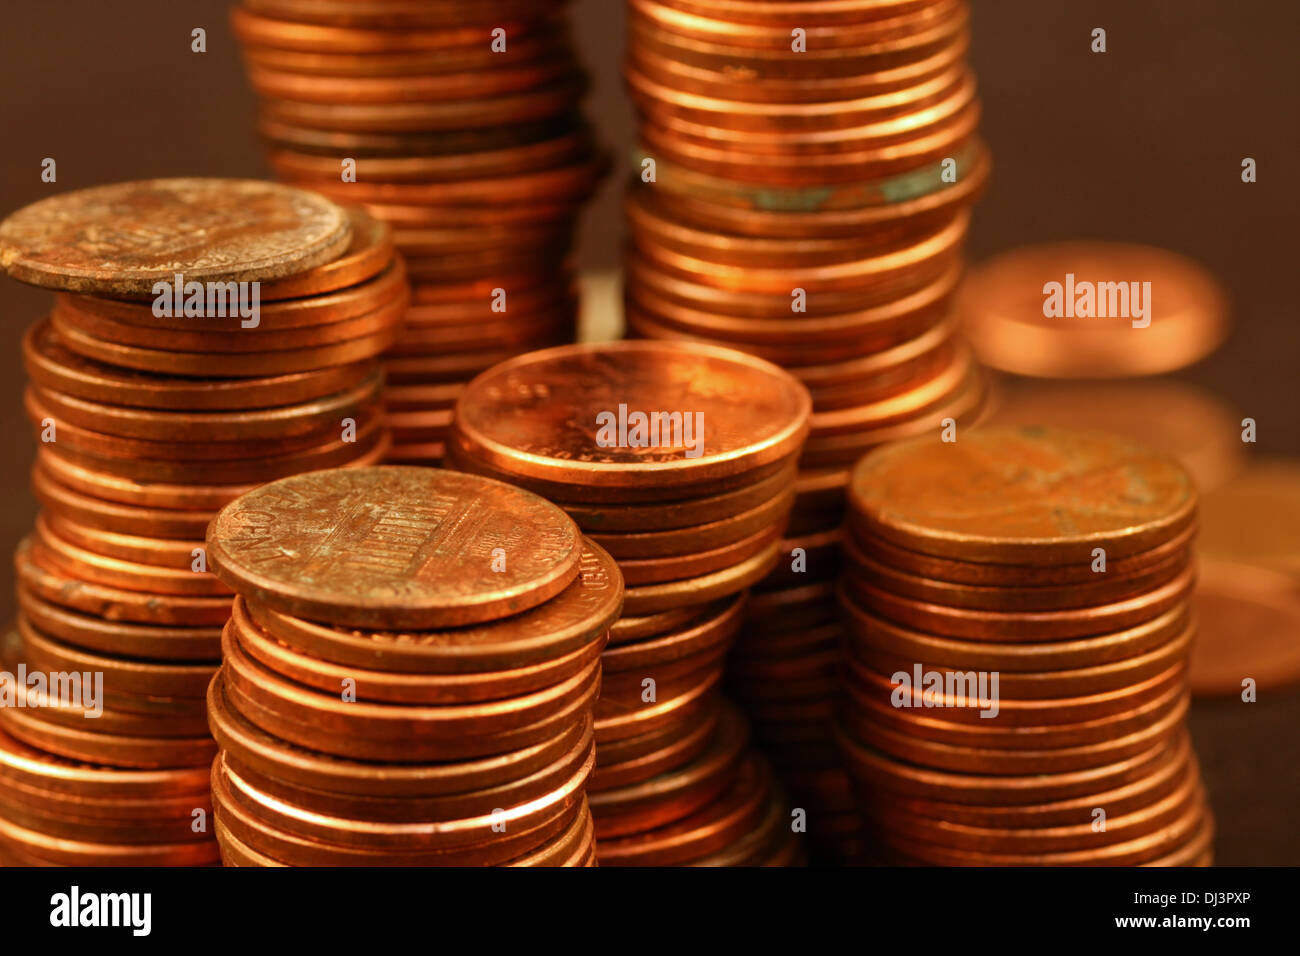 American pennies close up Stock Photo